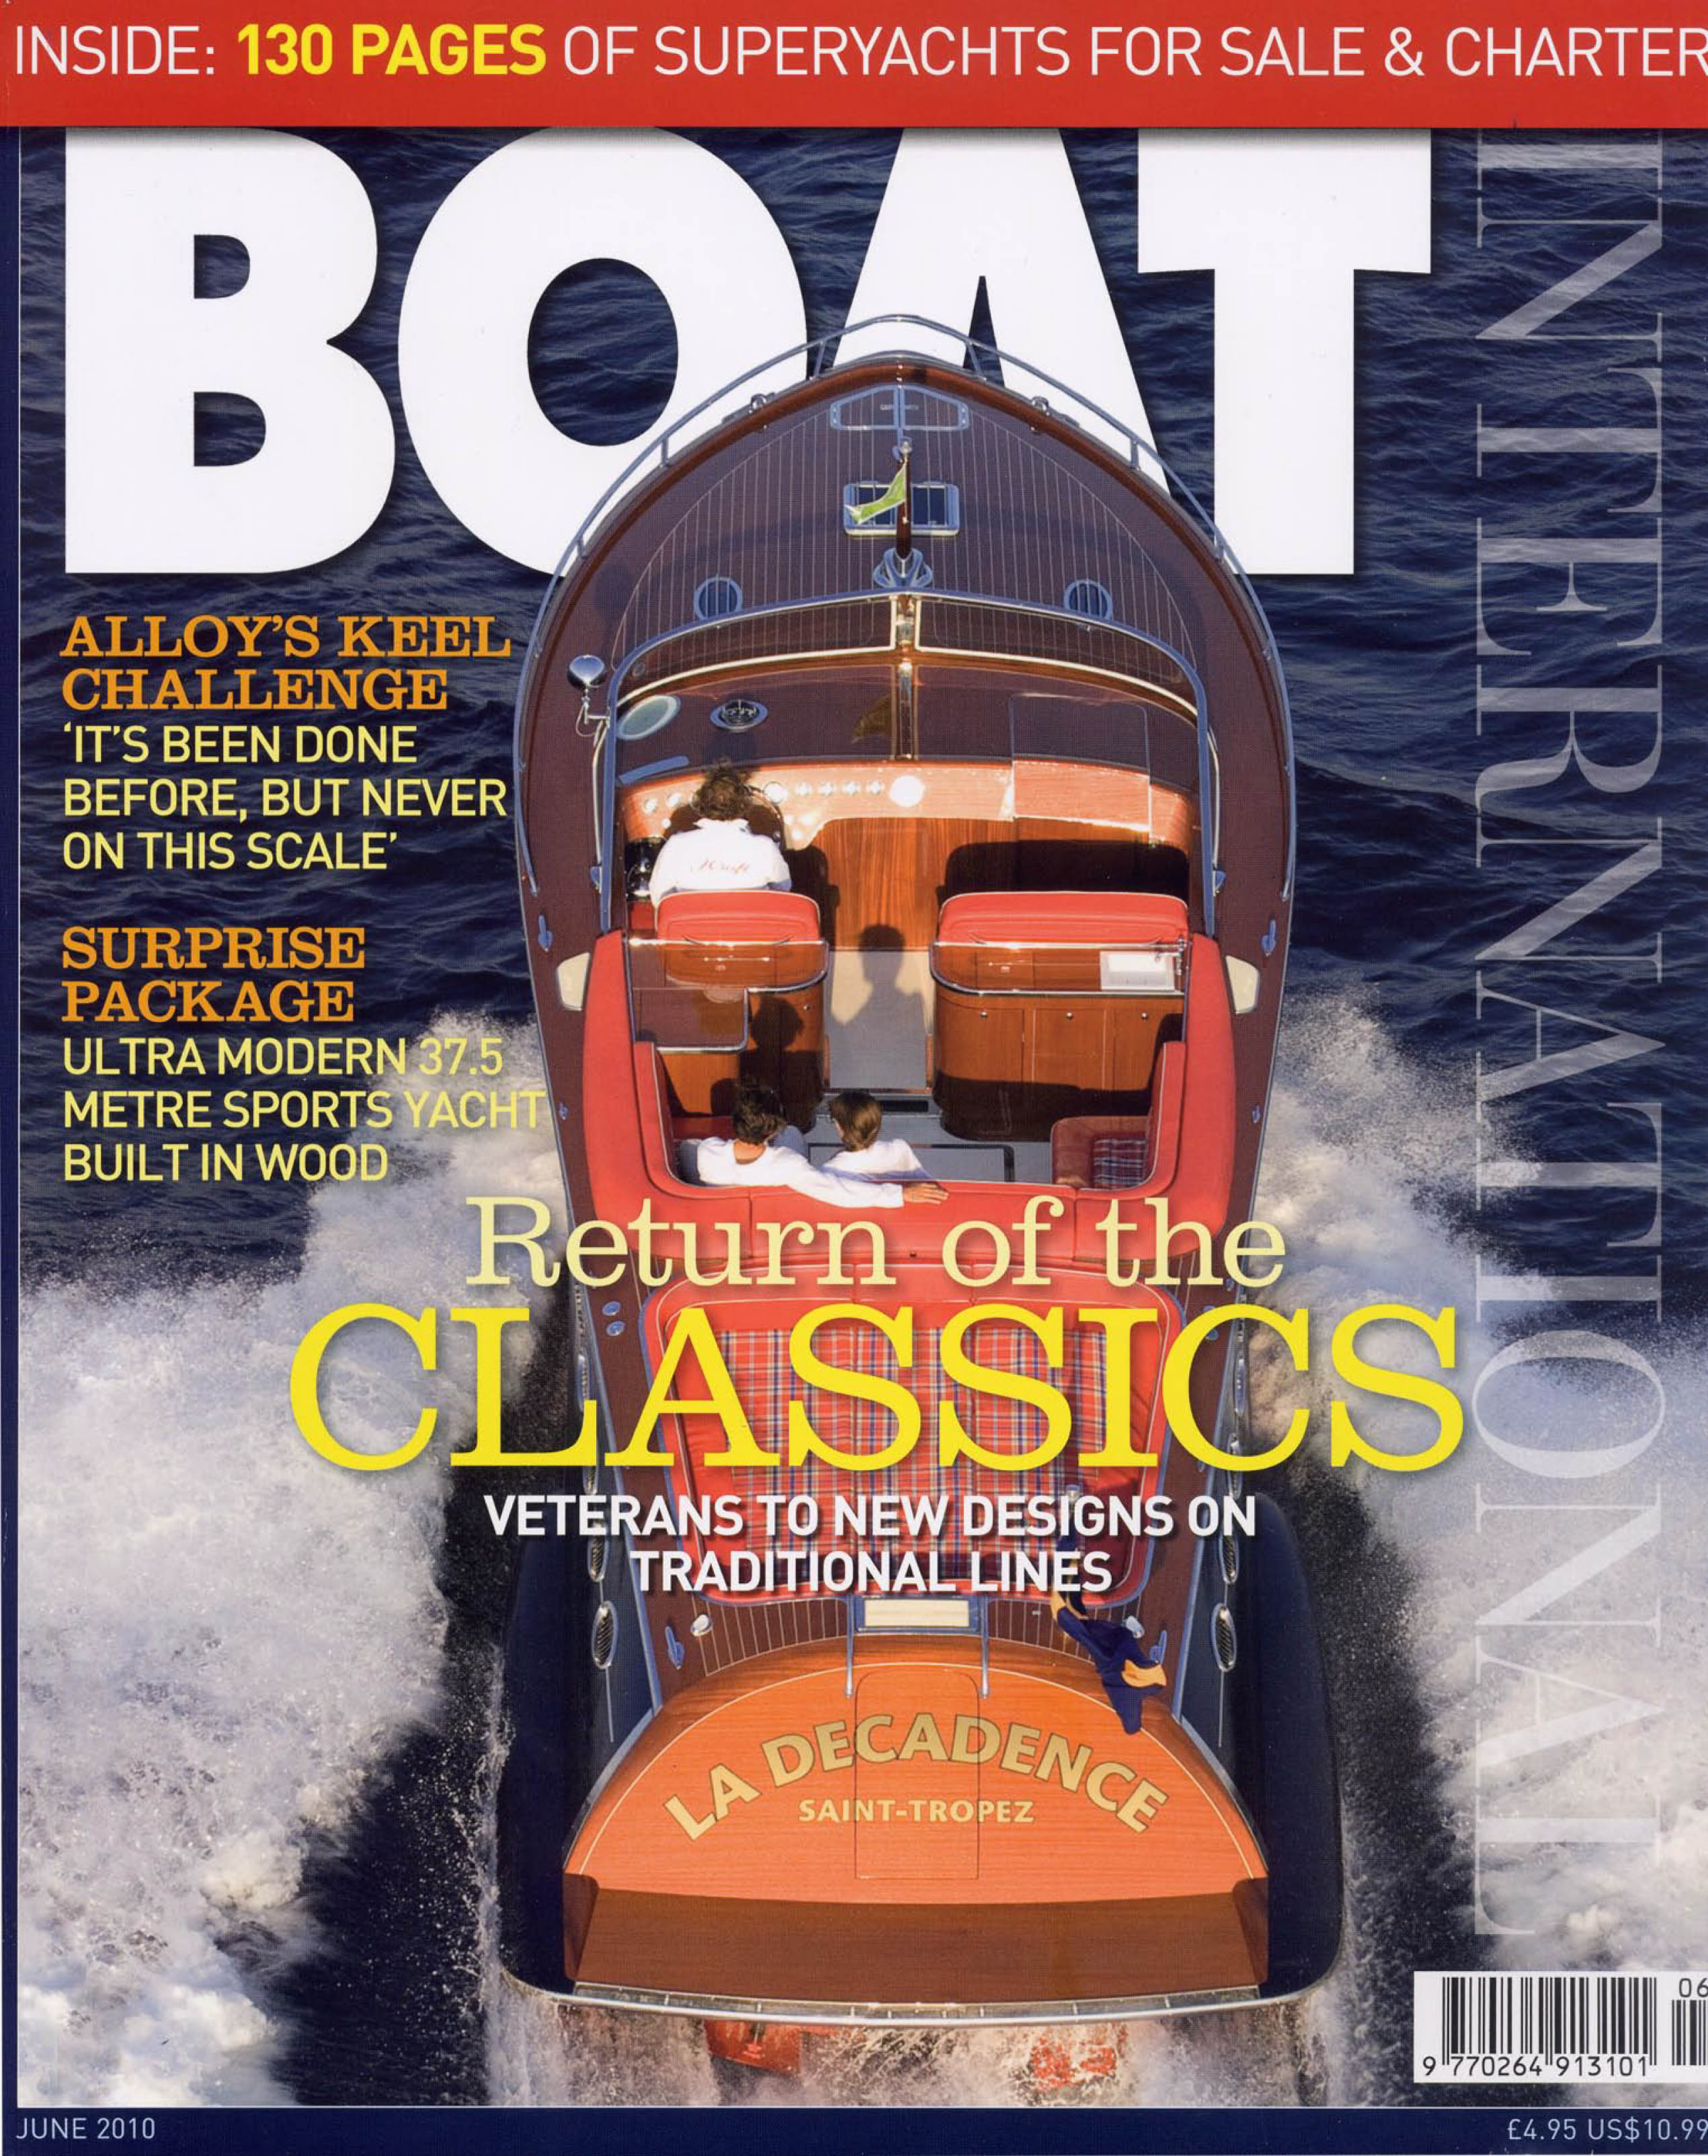 Boat International, issue 228, June 2010